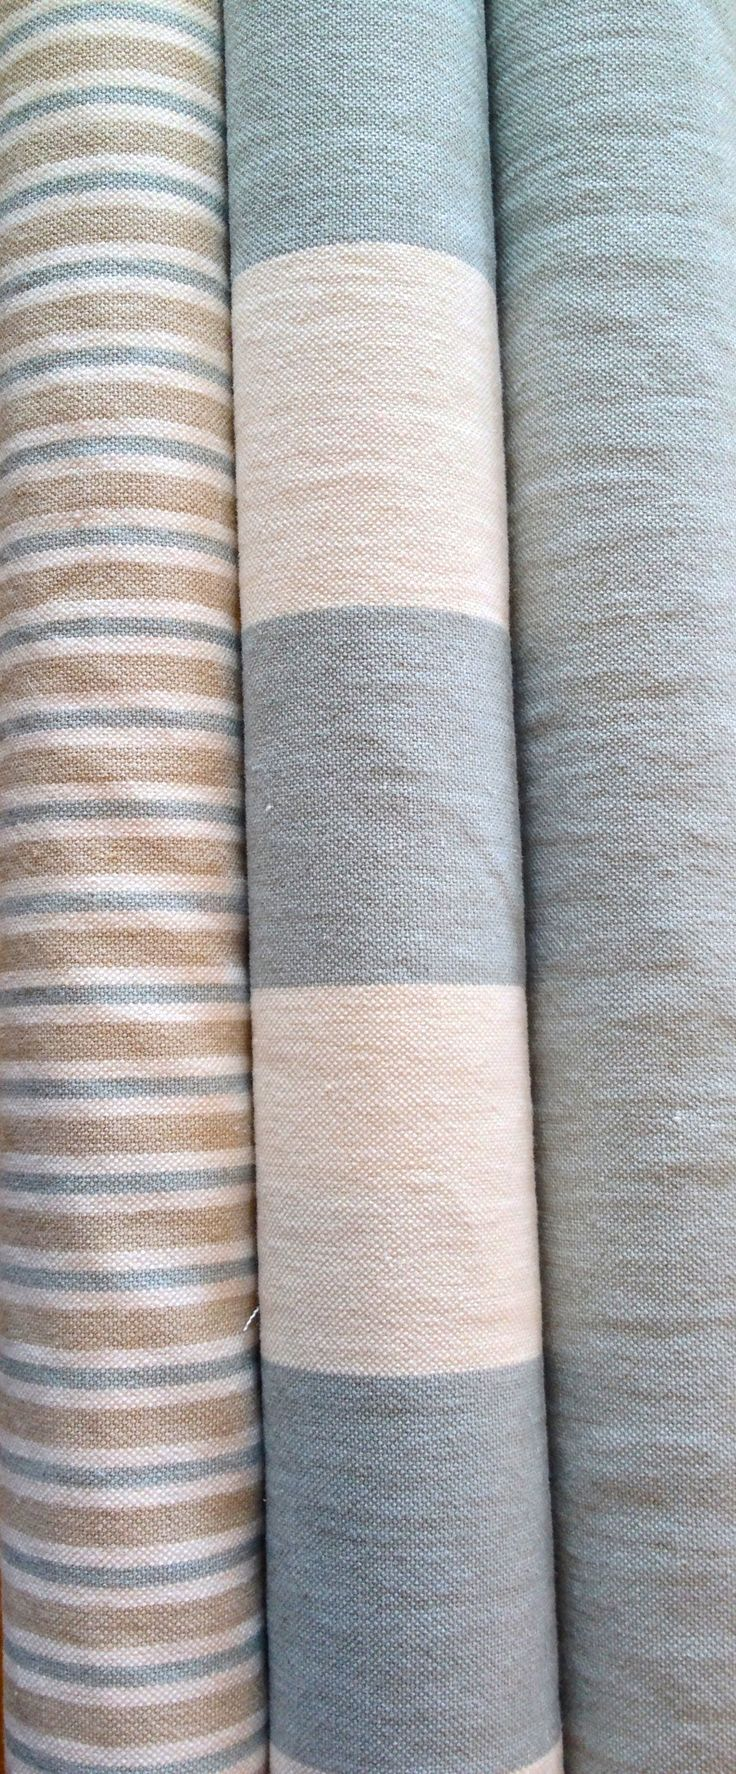 3 fabrics from Clarke Clarke Country Linens.